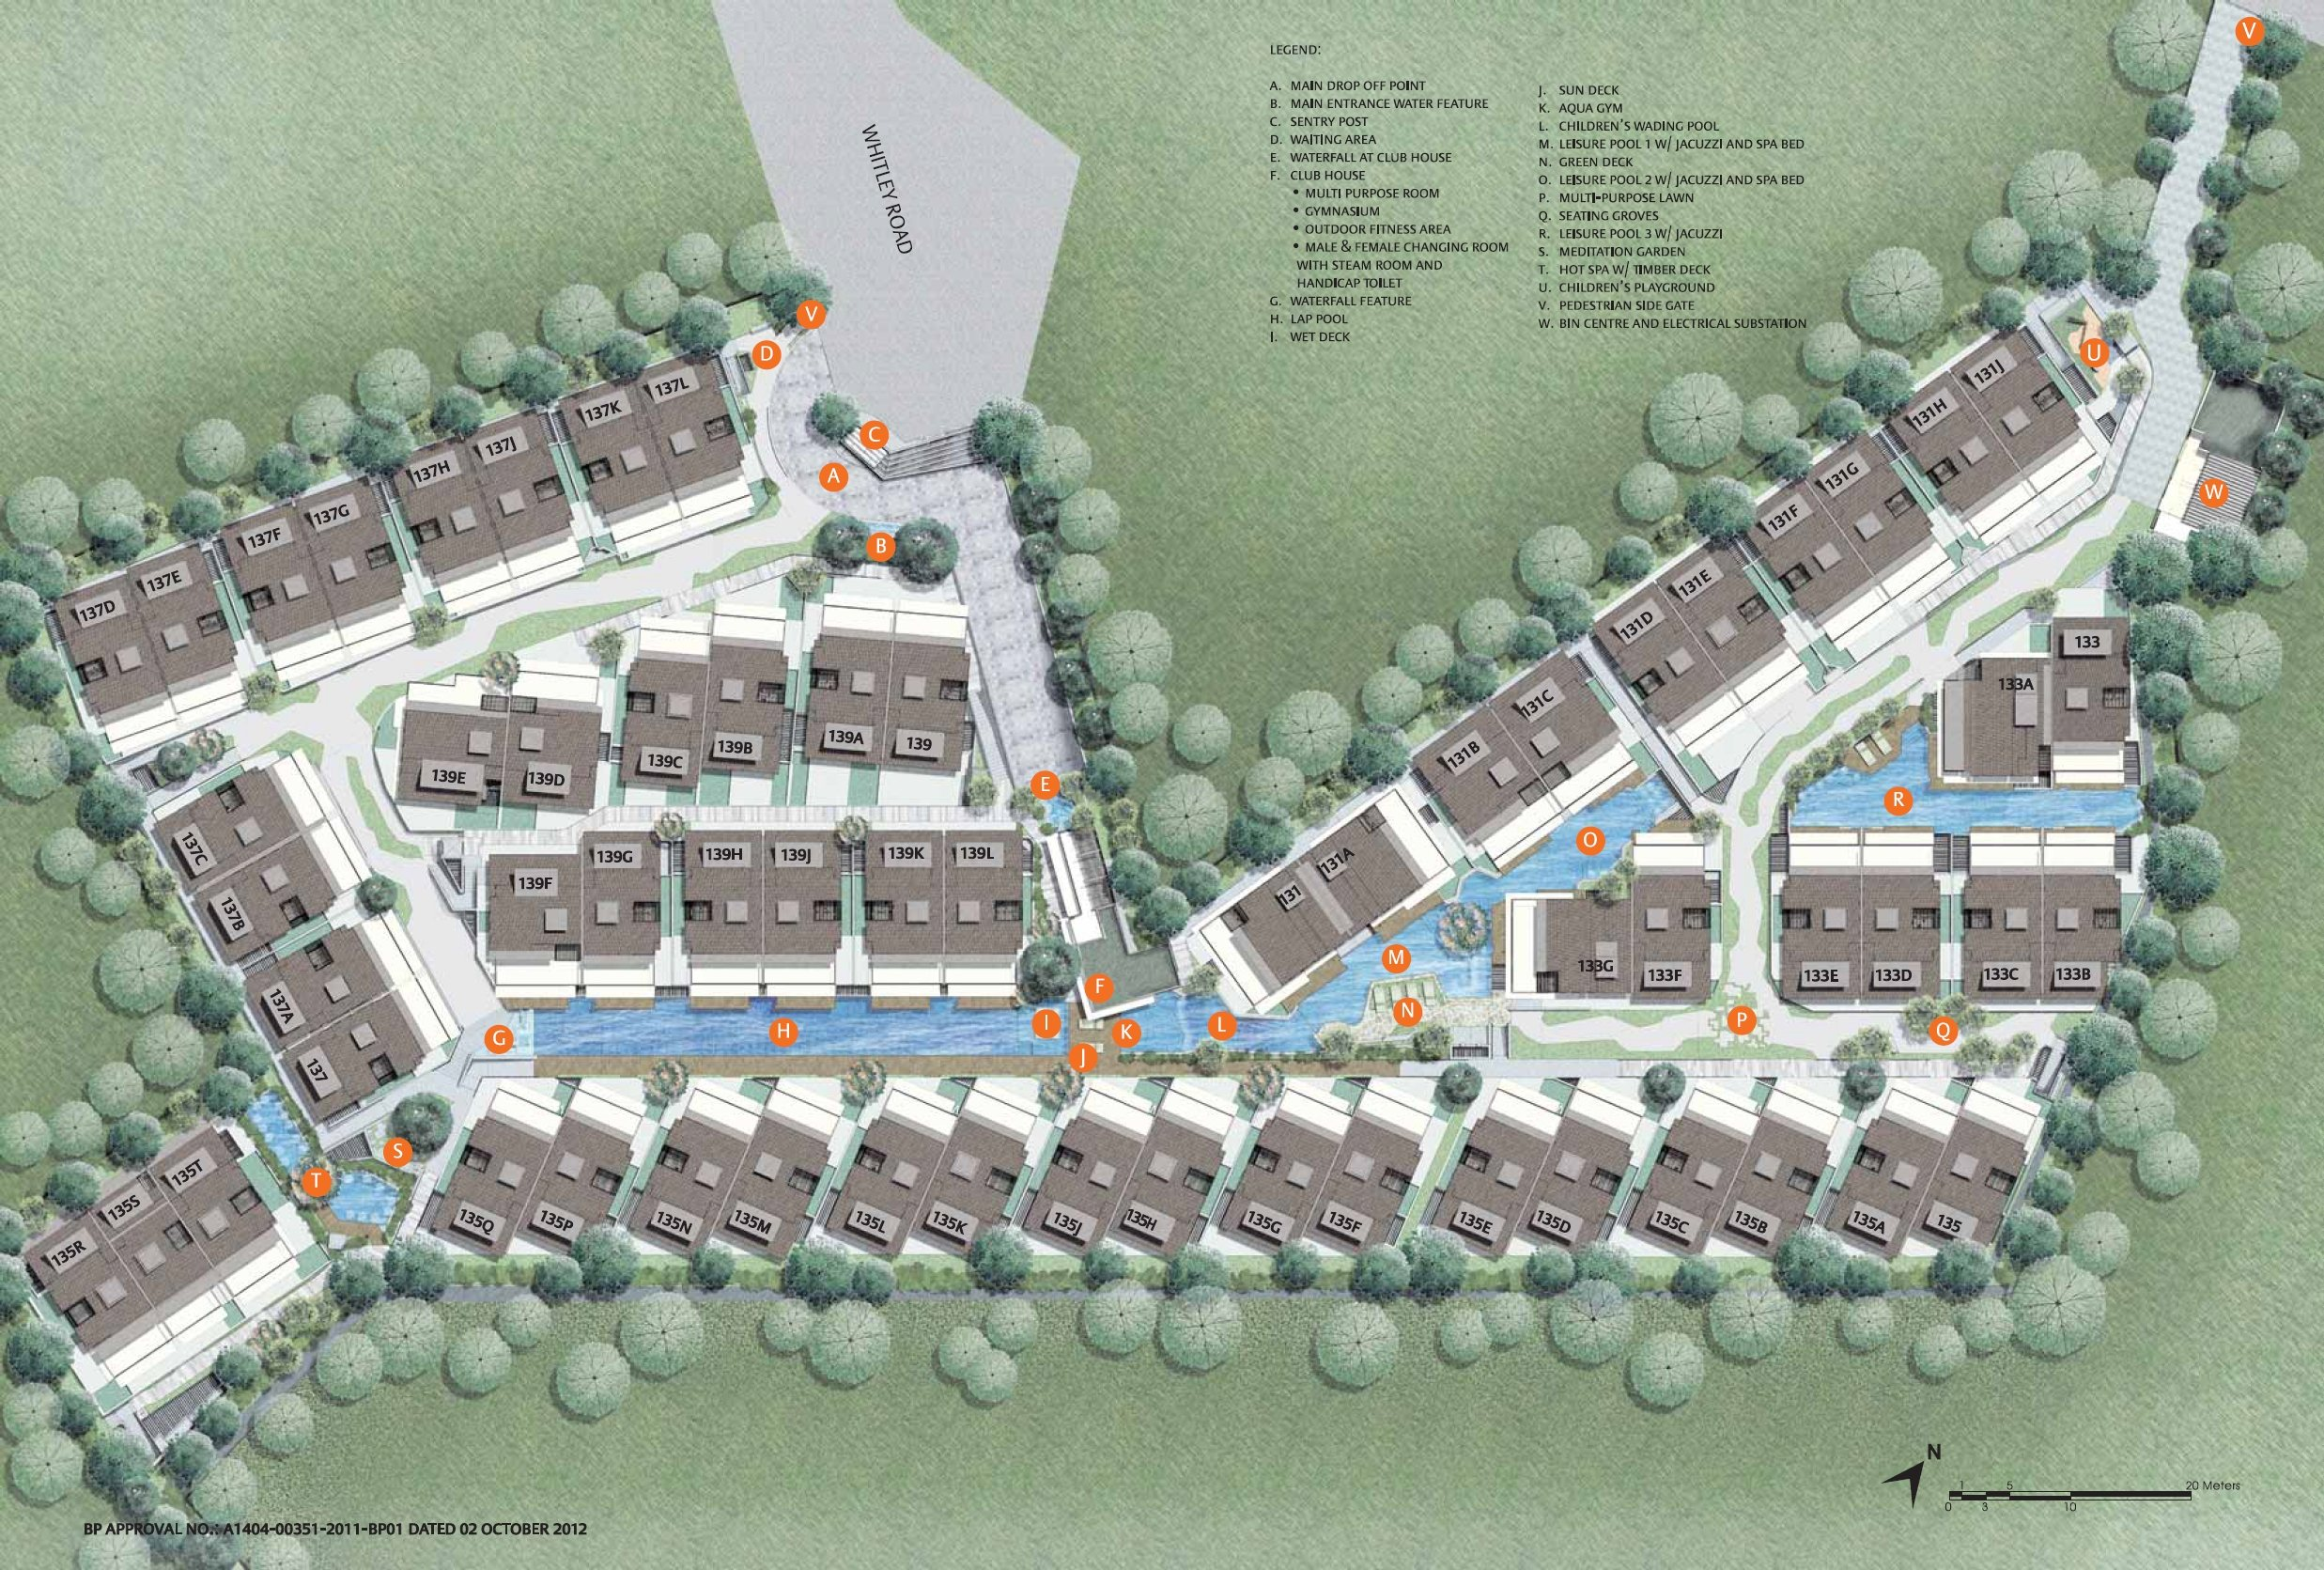 The Whitley Residences site plan